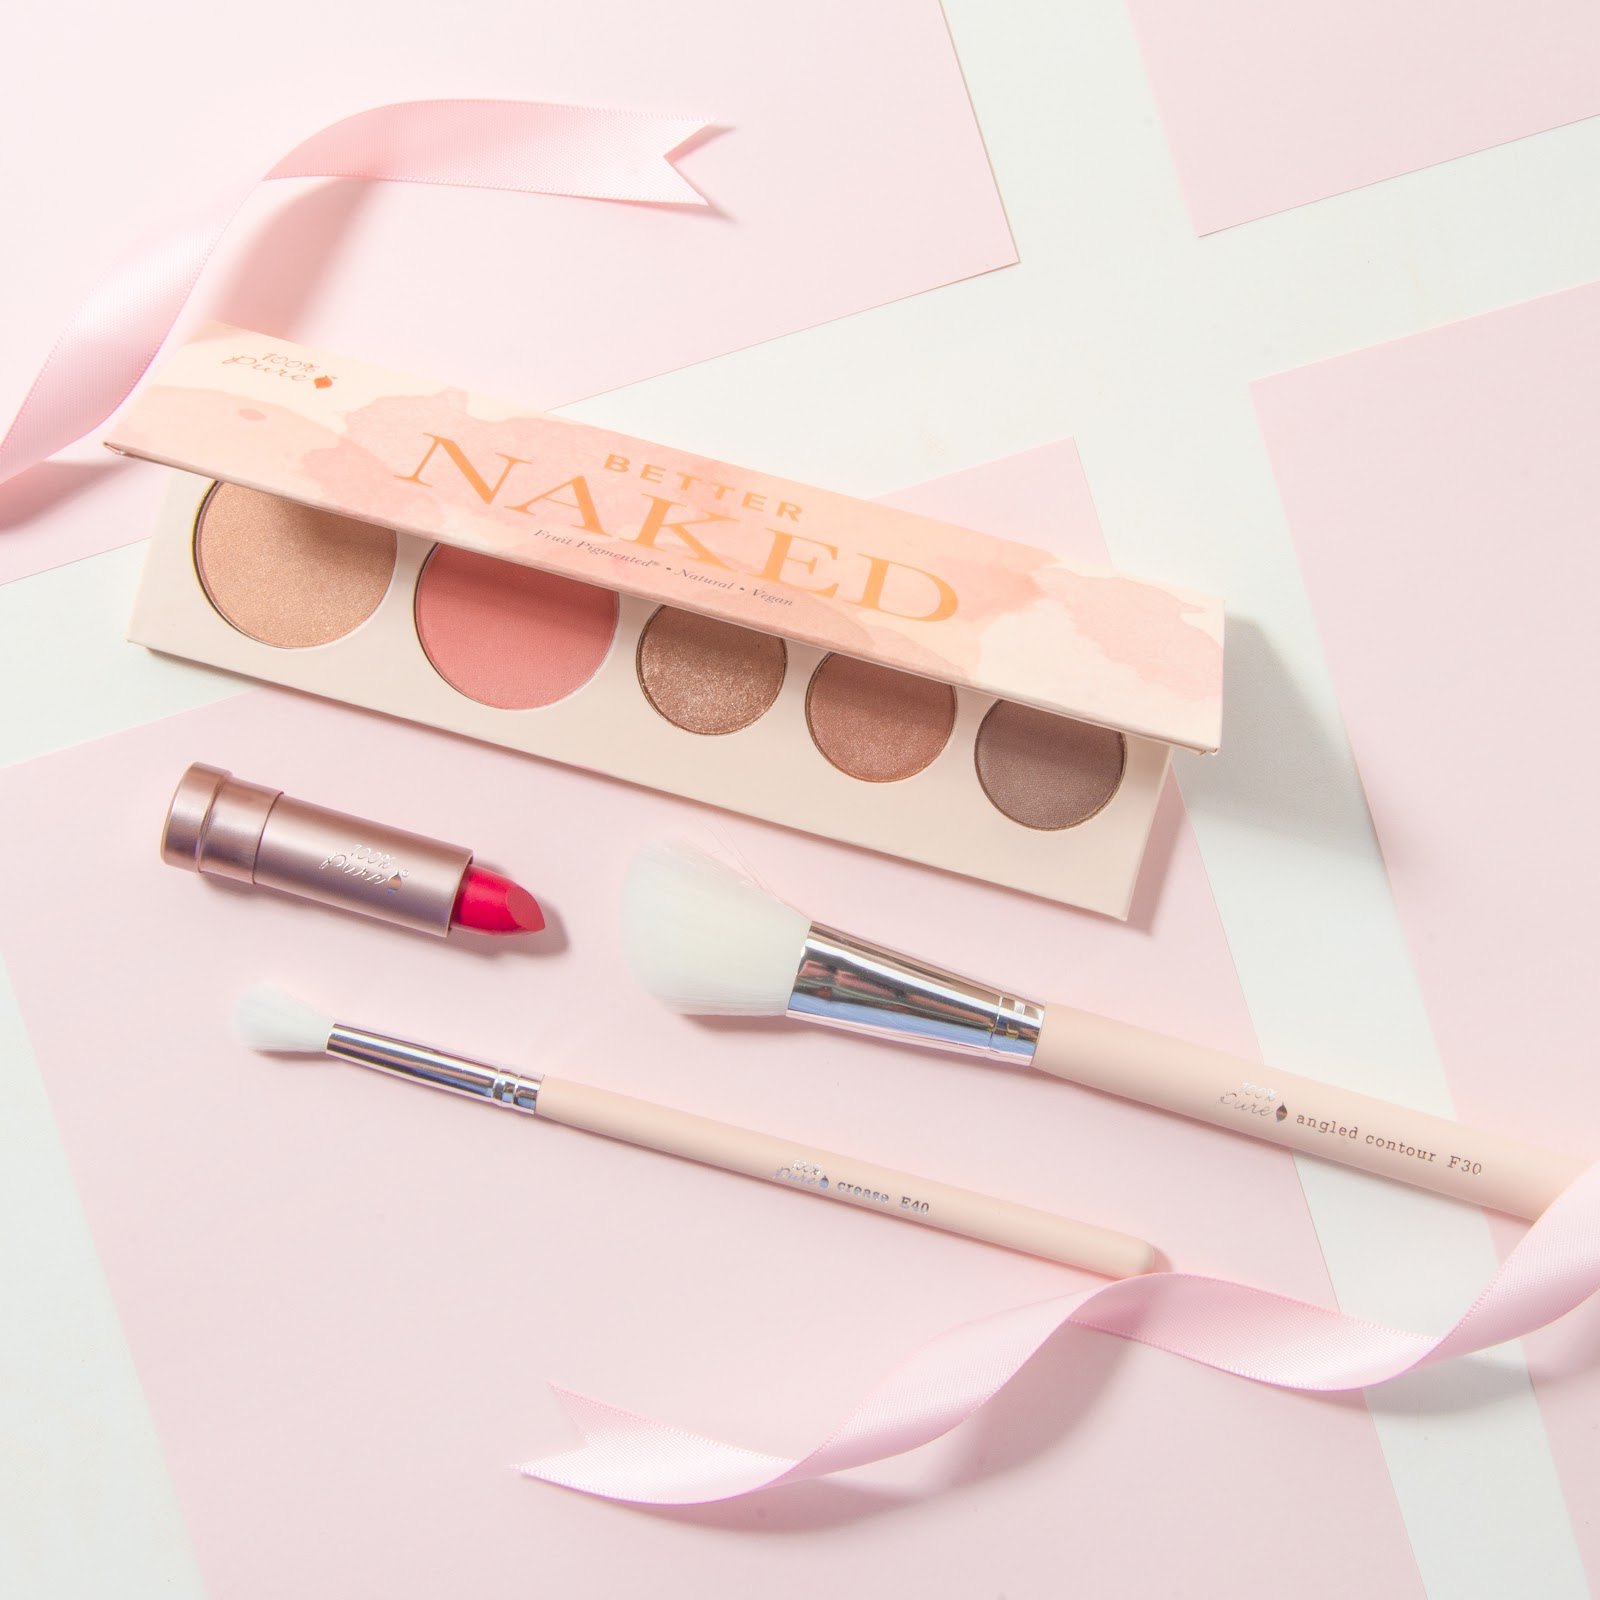 Clean Up Your Beauty Routine: How To Find Safe Makeup